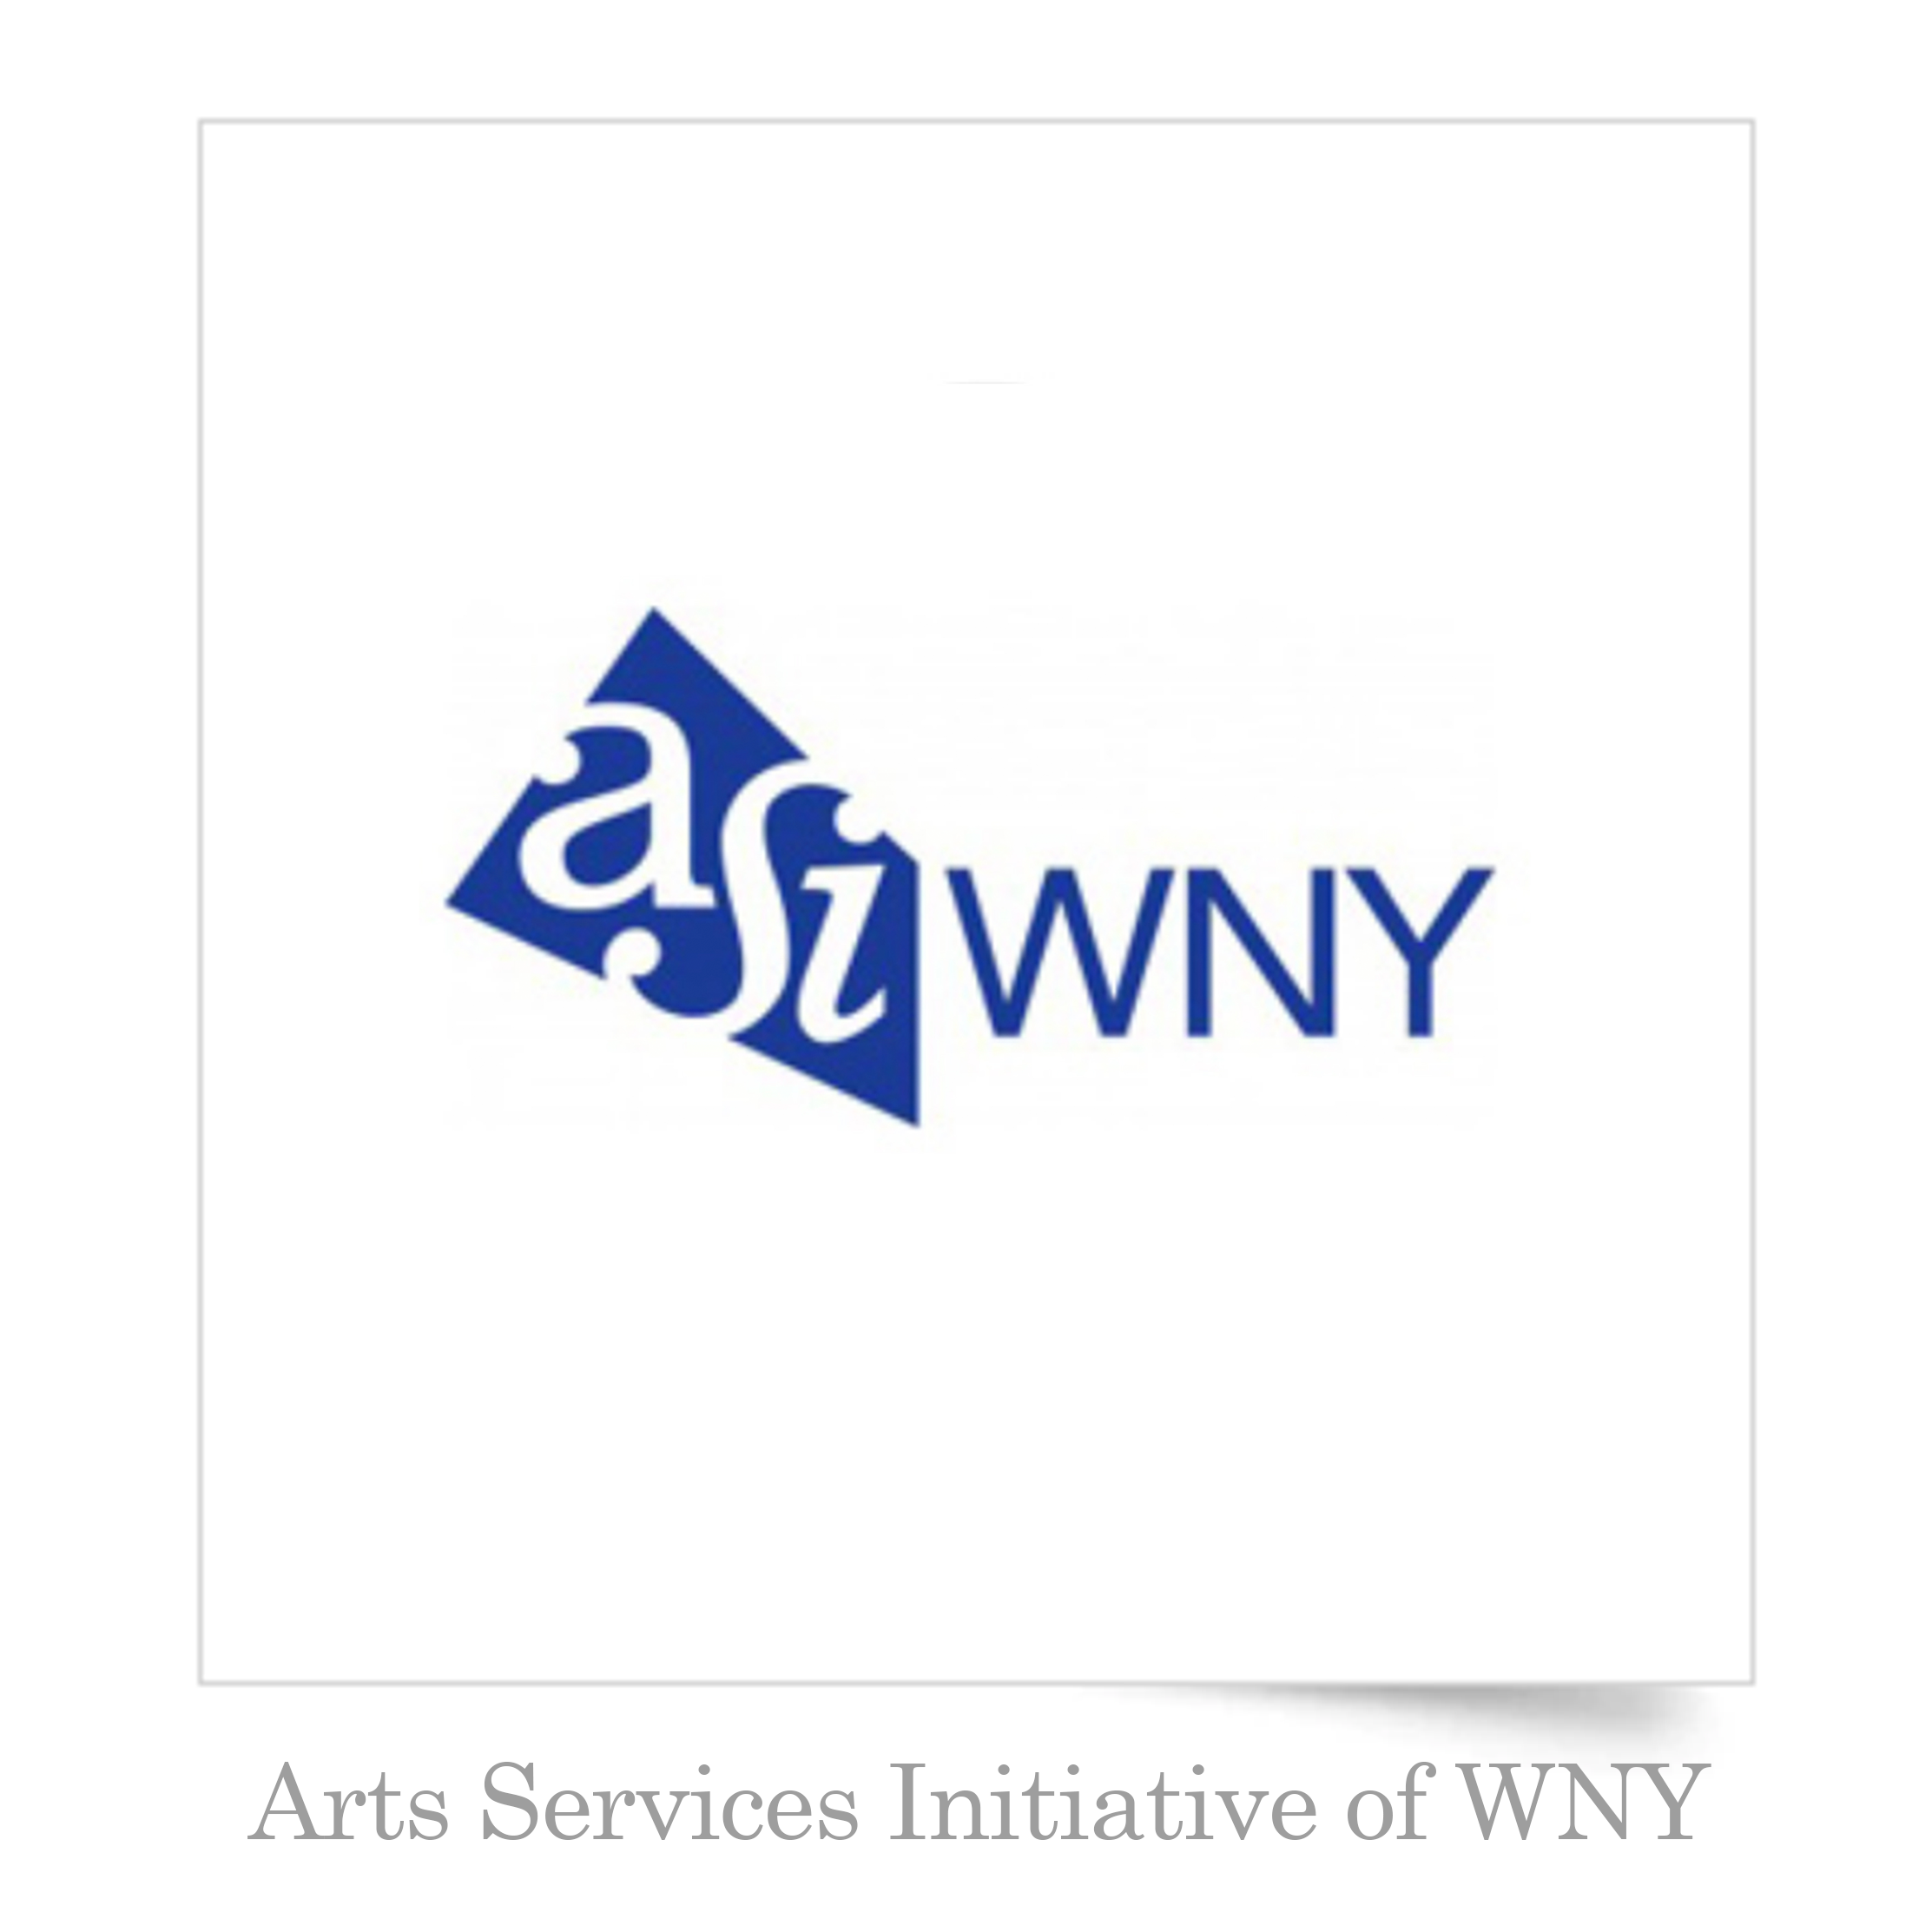 Arts Services Initiative of WNY